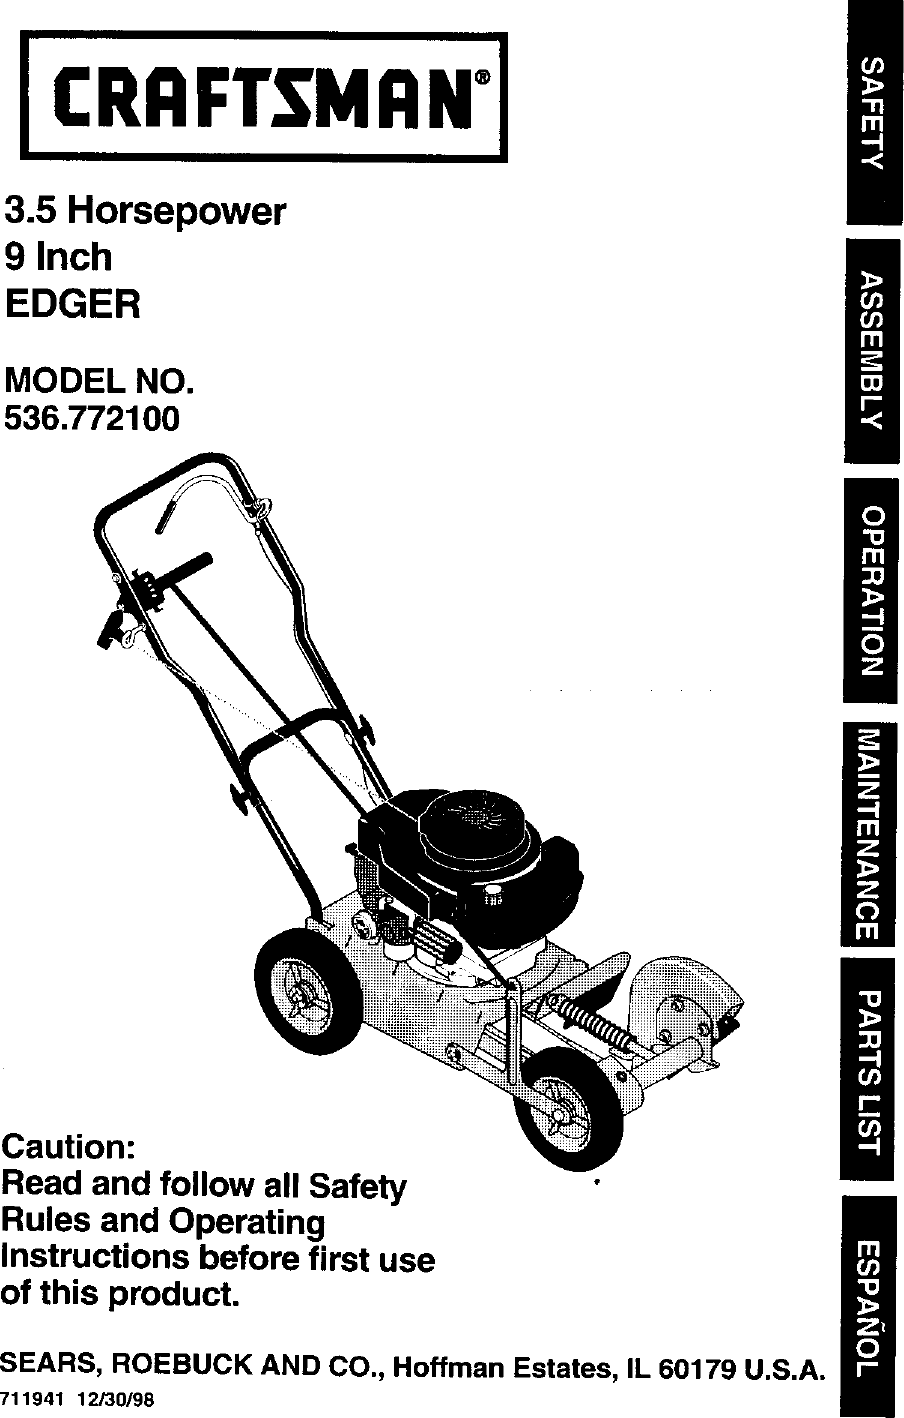 Craftsman 536772100 User Manual EDGER Manuals And Guides